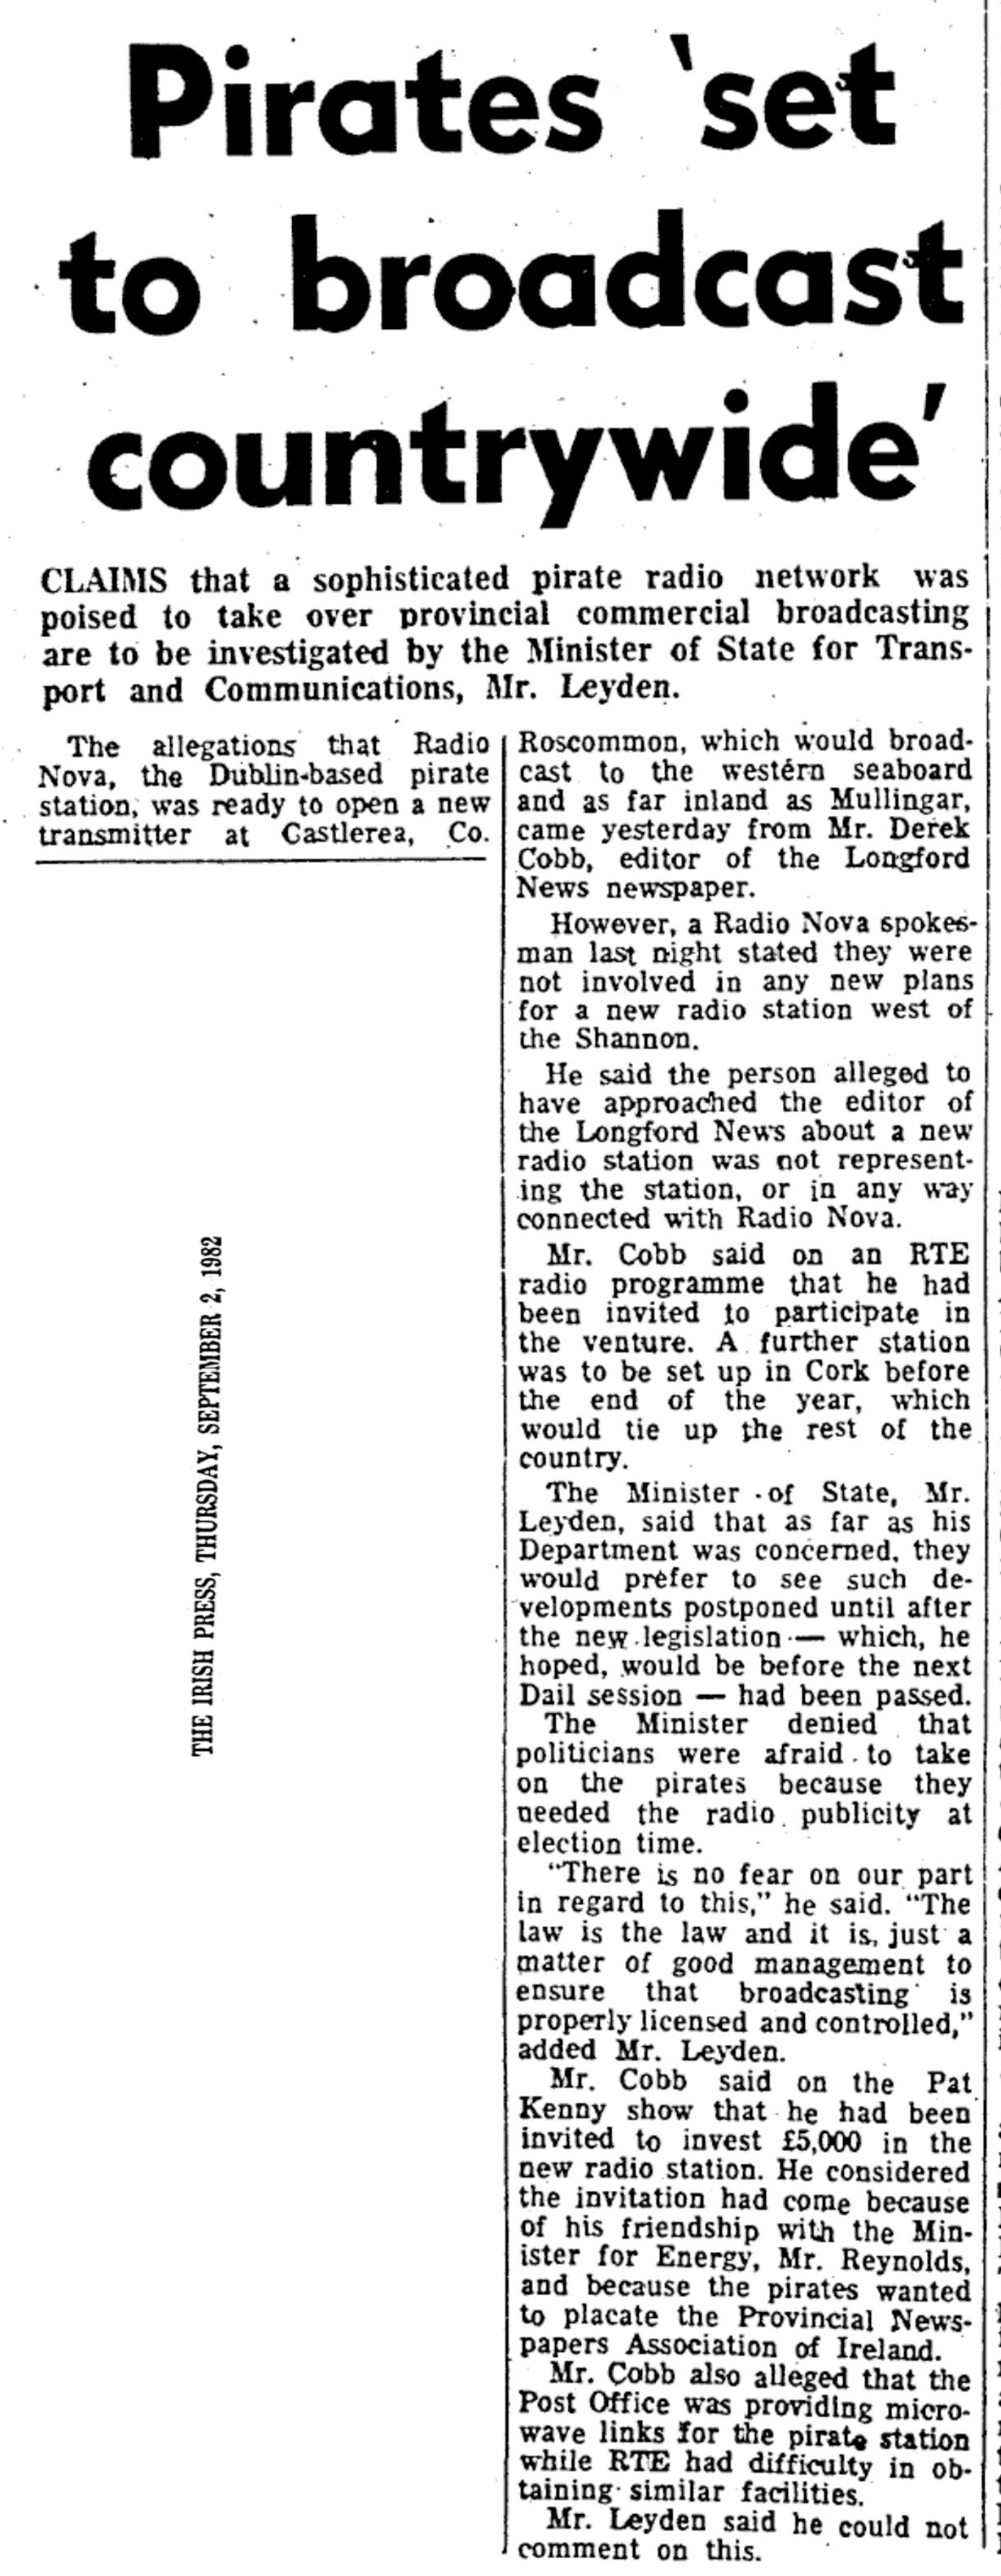 Pirates 'set to broadcast countrywide' was a newspaper headline from The Irish Press dated September 2nd 1982